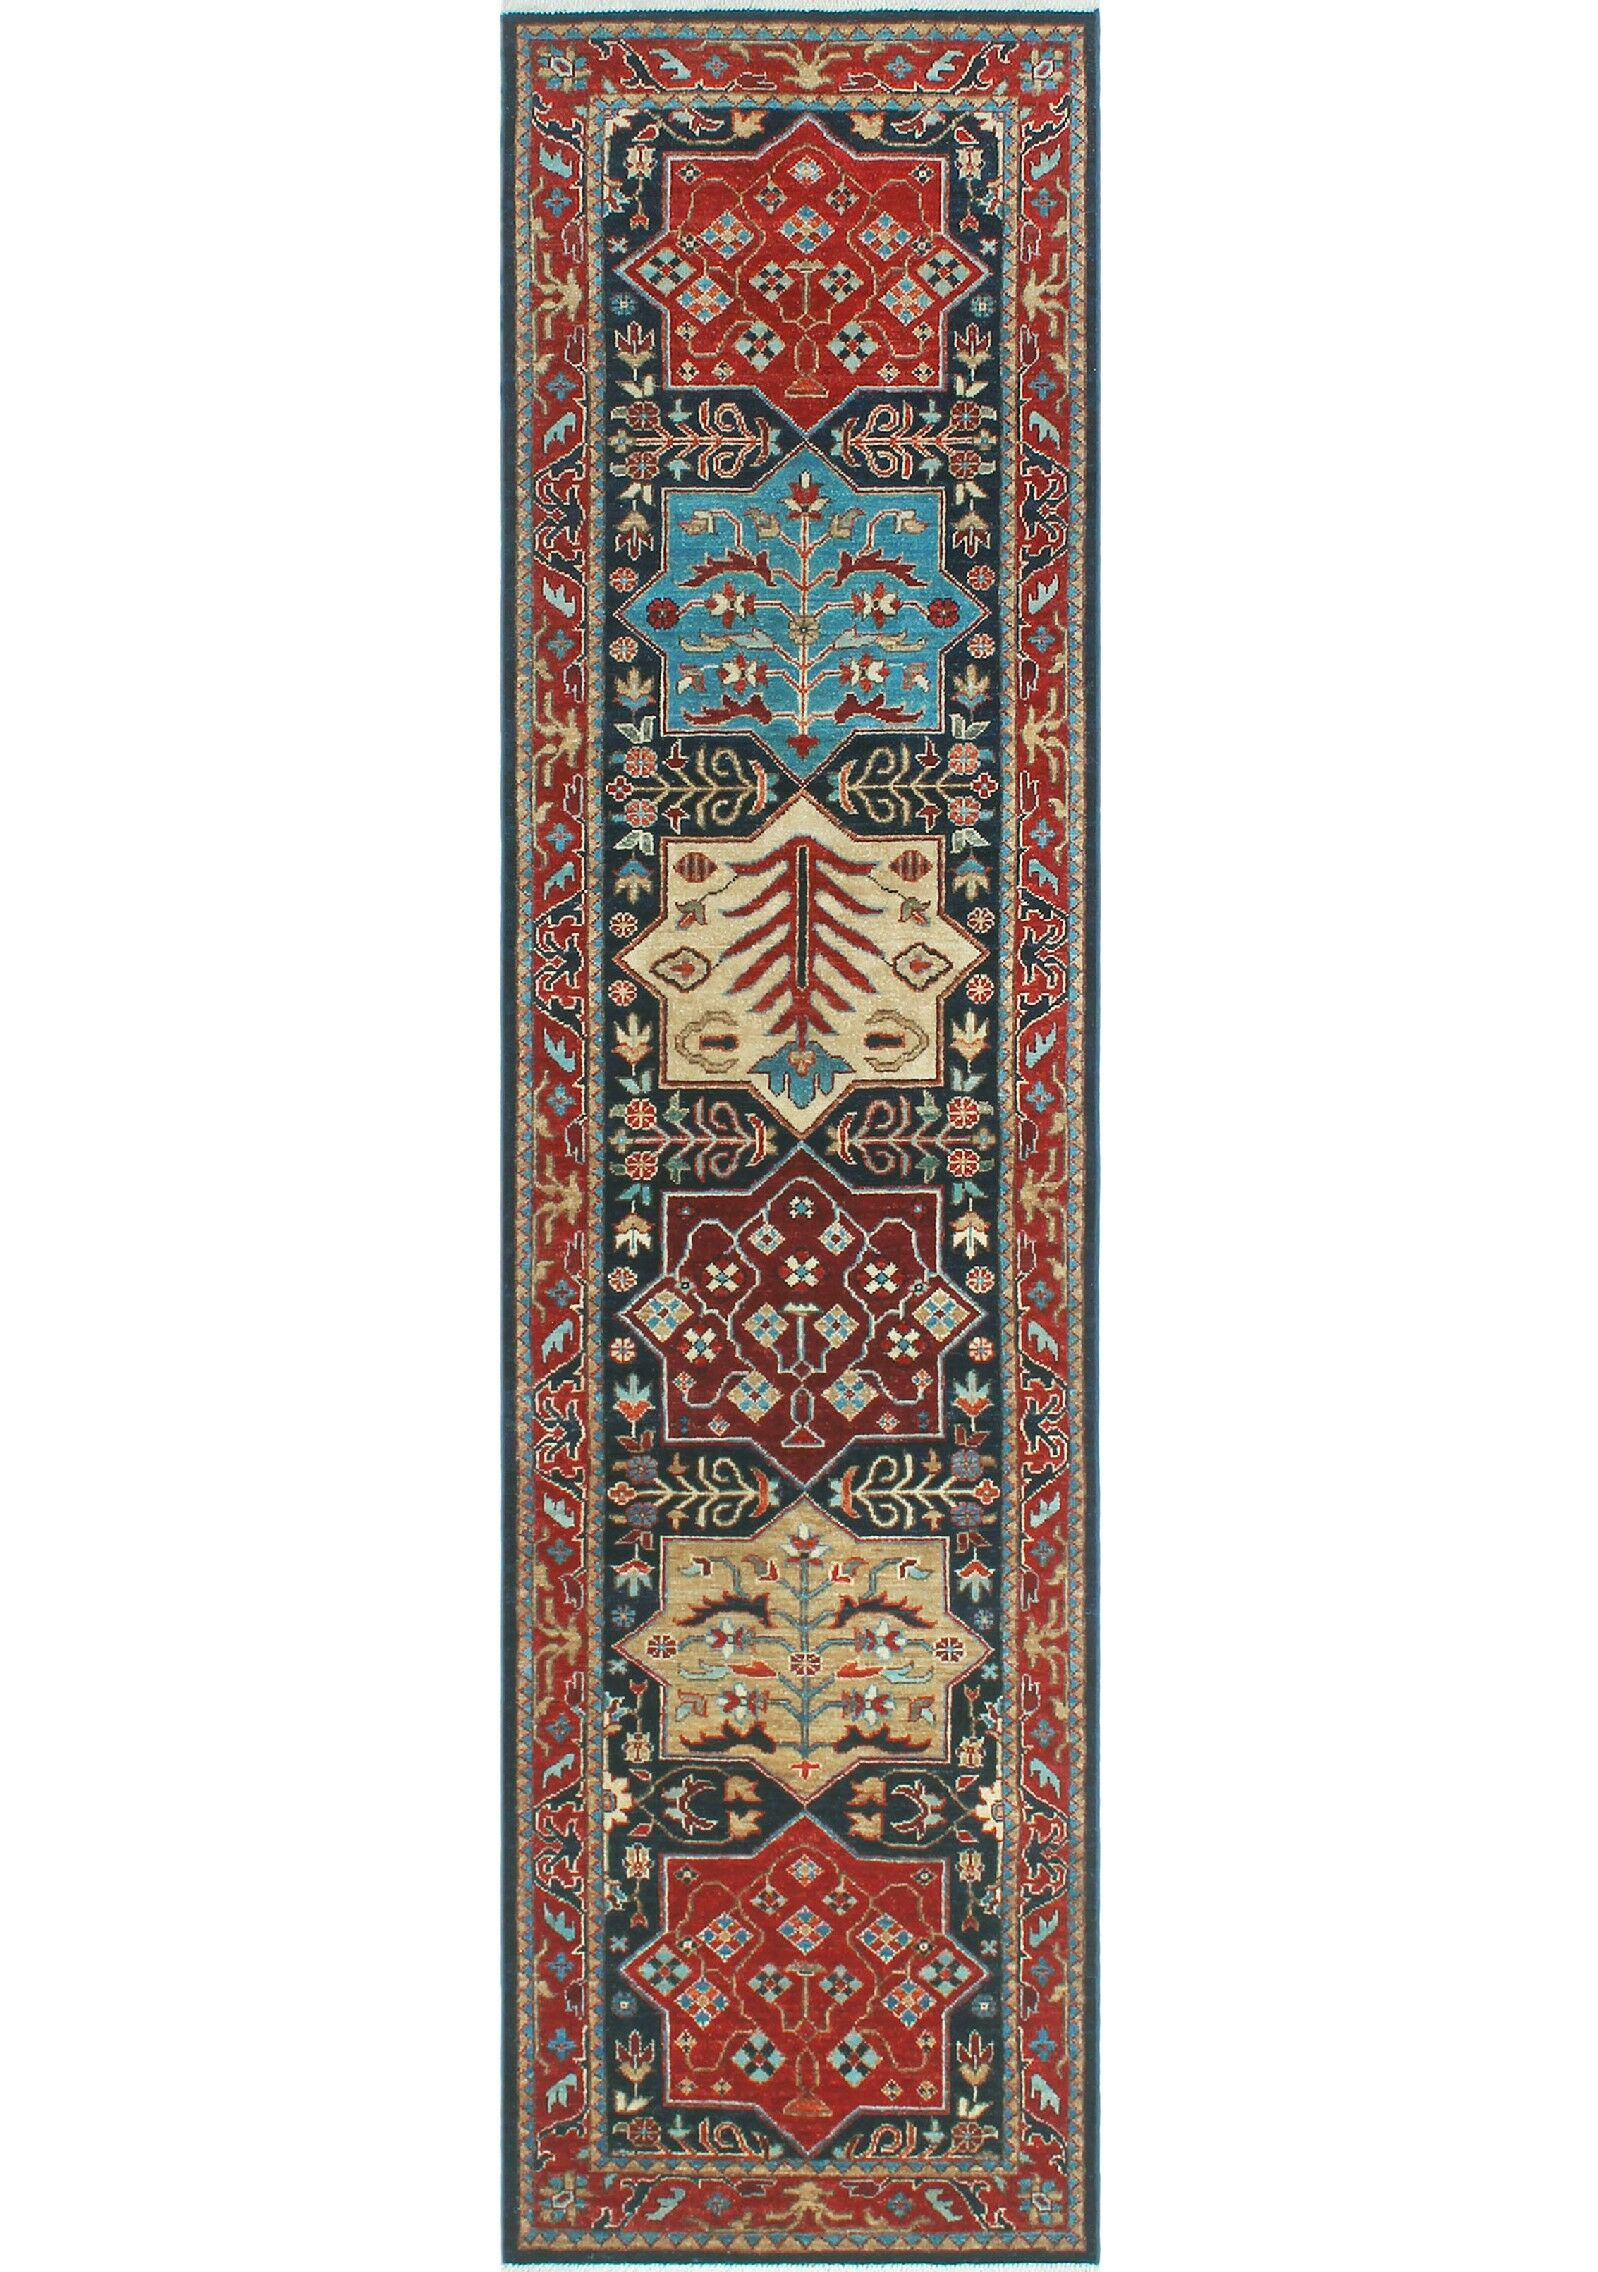 Woodmoor Hand-Knotted Wool Red/Black Area Rug Rug Size: Runner 2'6